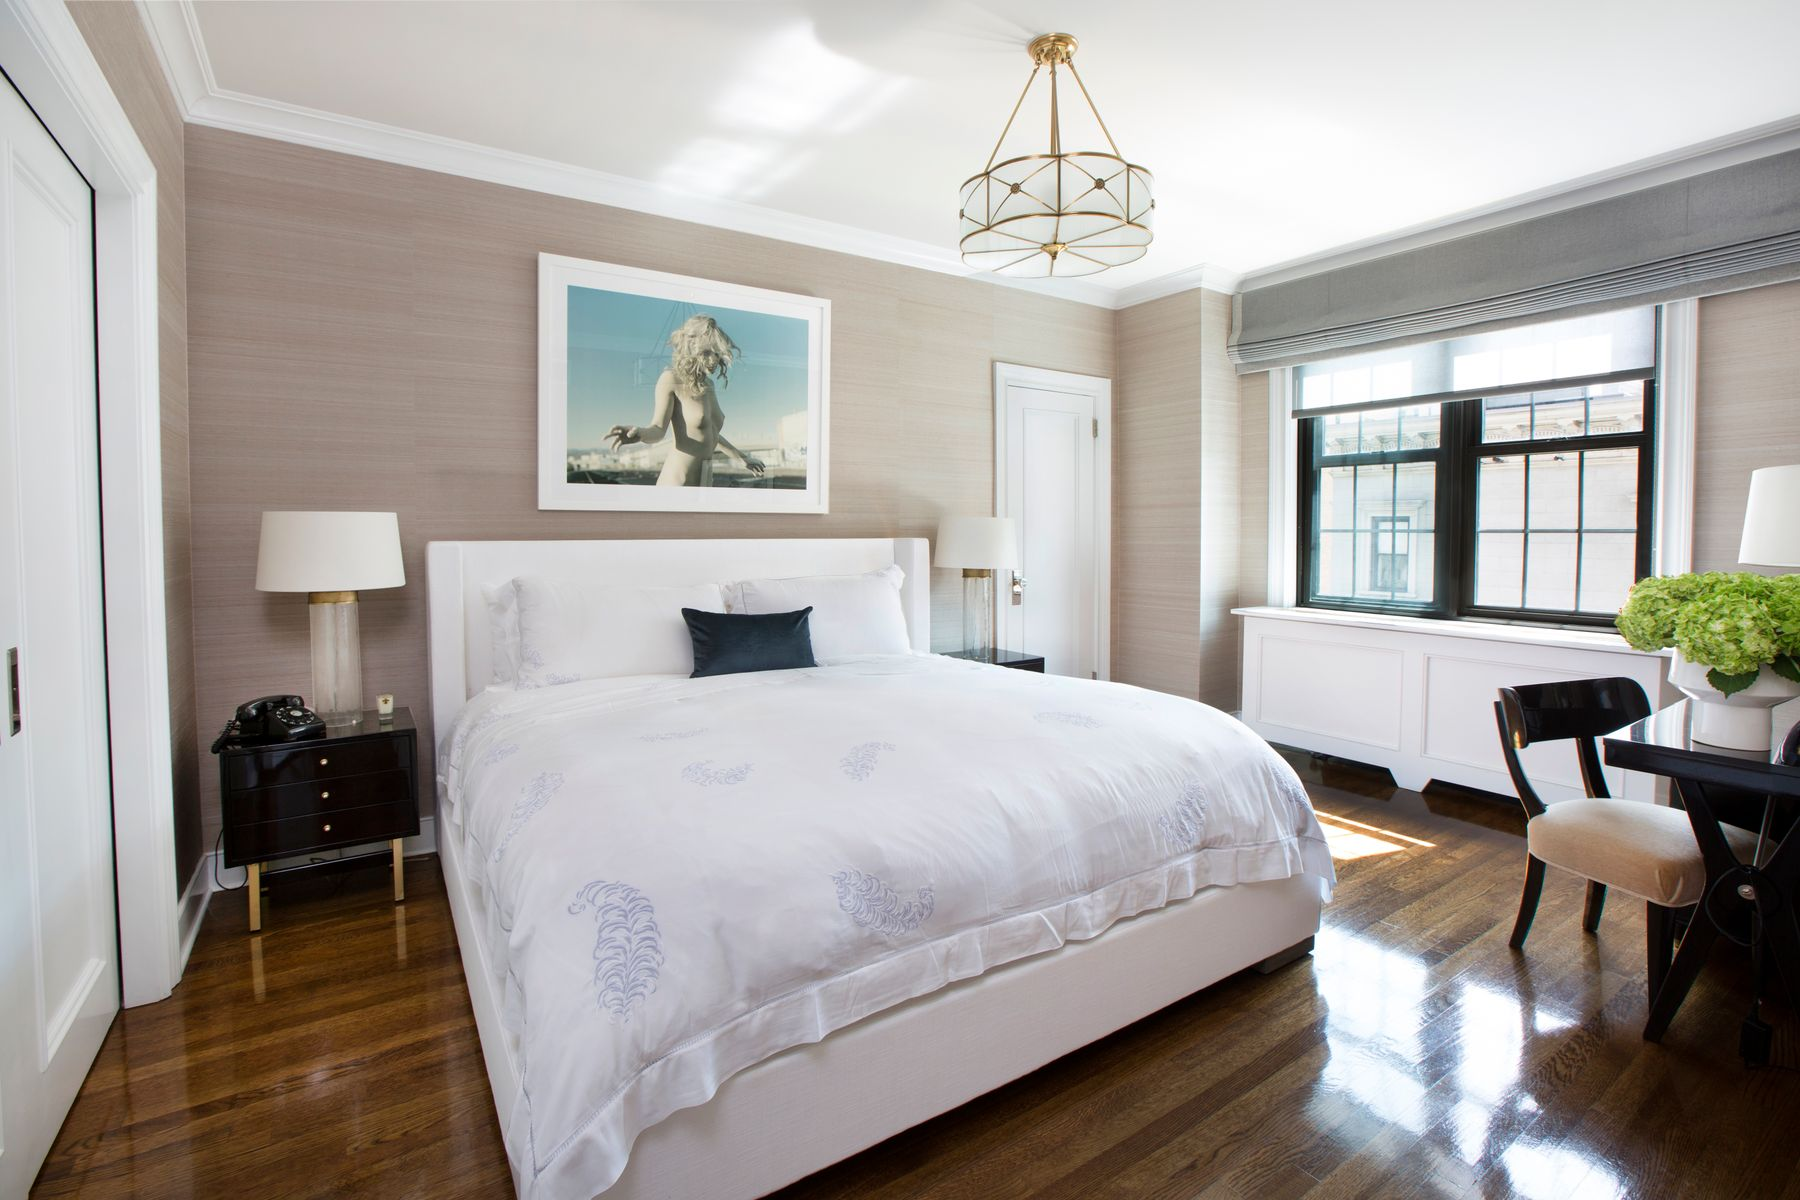 Martine Capdevielle_Luxury Real Estate NYC_21 East 66th St Apt 5w 10.jpg